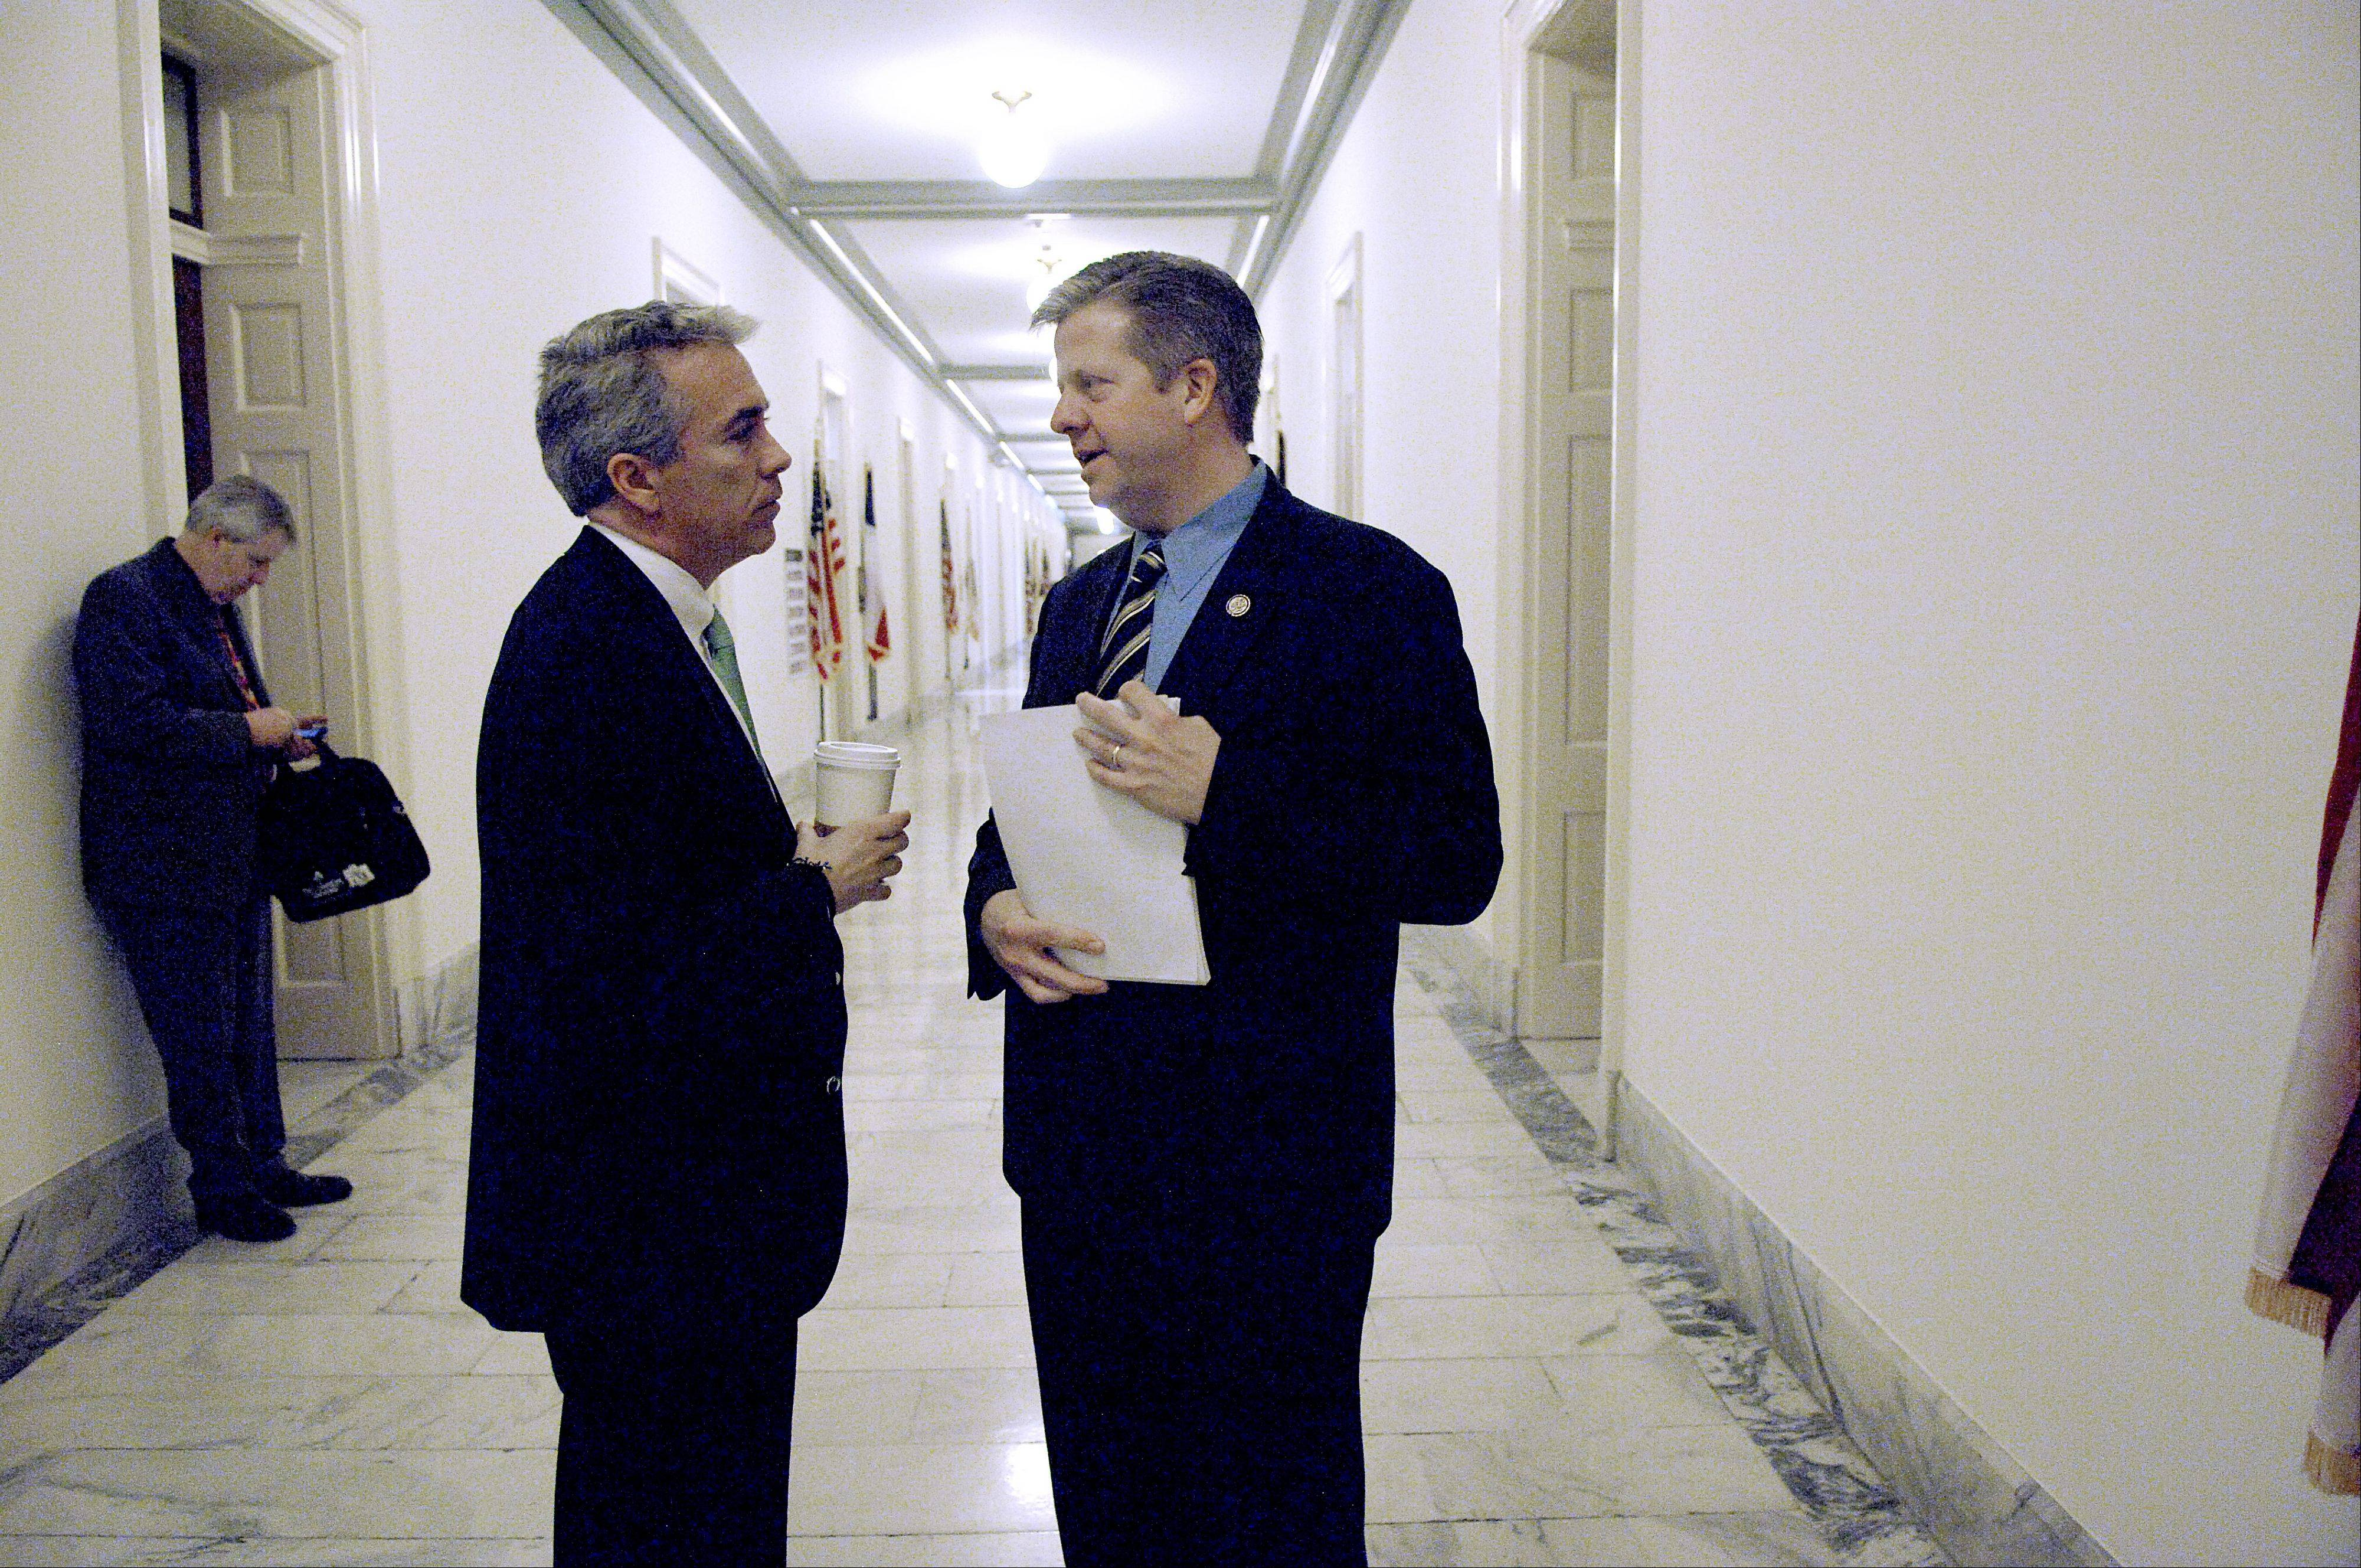 Illinois congressmen Joe Walsh, left, and Randy Hultgren chat in the hallway of the Cannon House office building in Washington D.C. shortly after both took office. Now, the two are facing each other in a primary election battle.